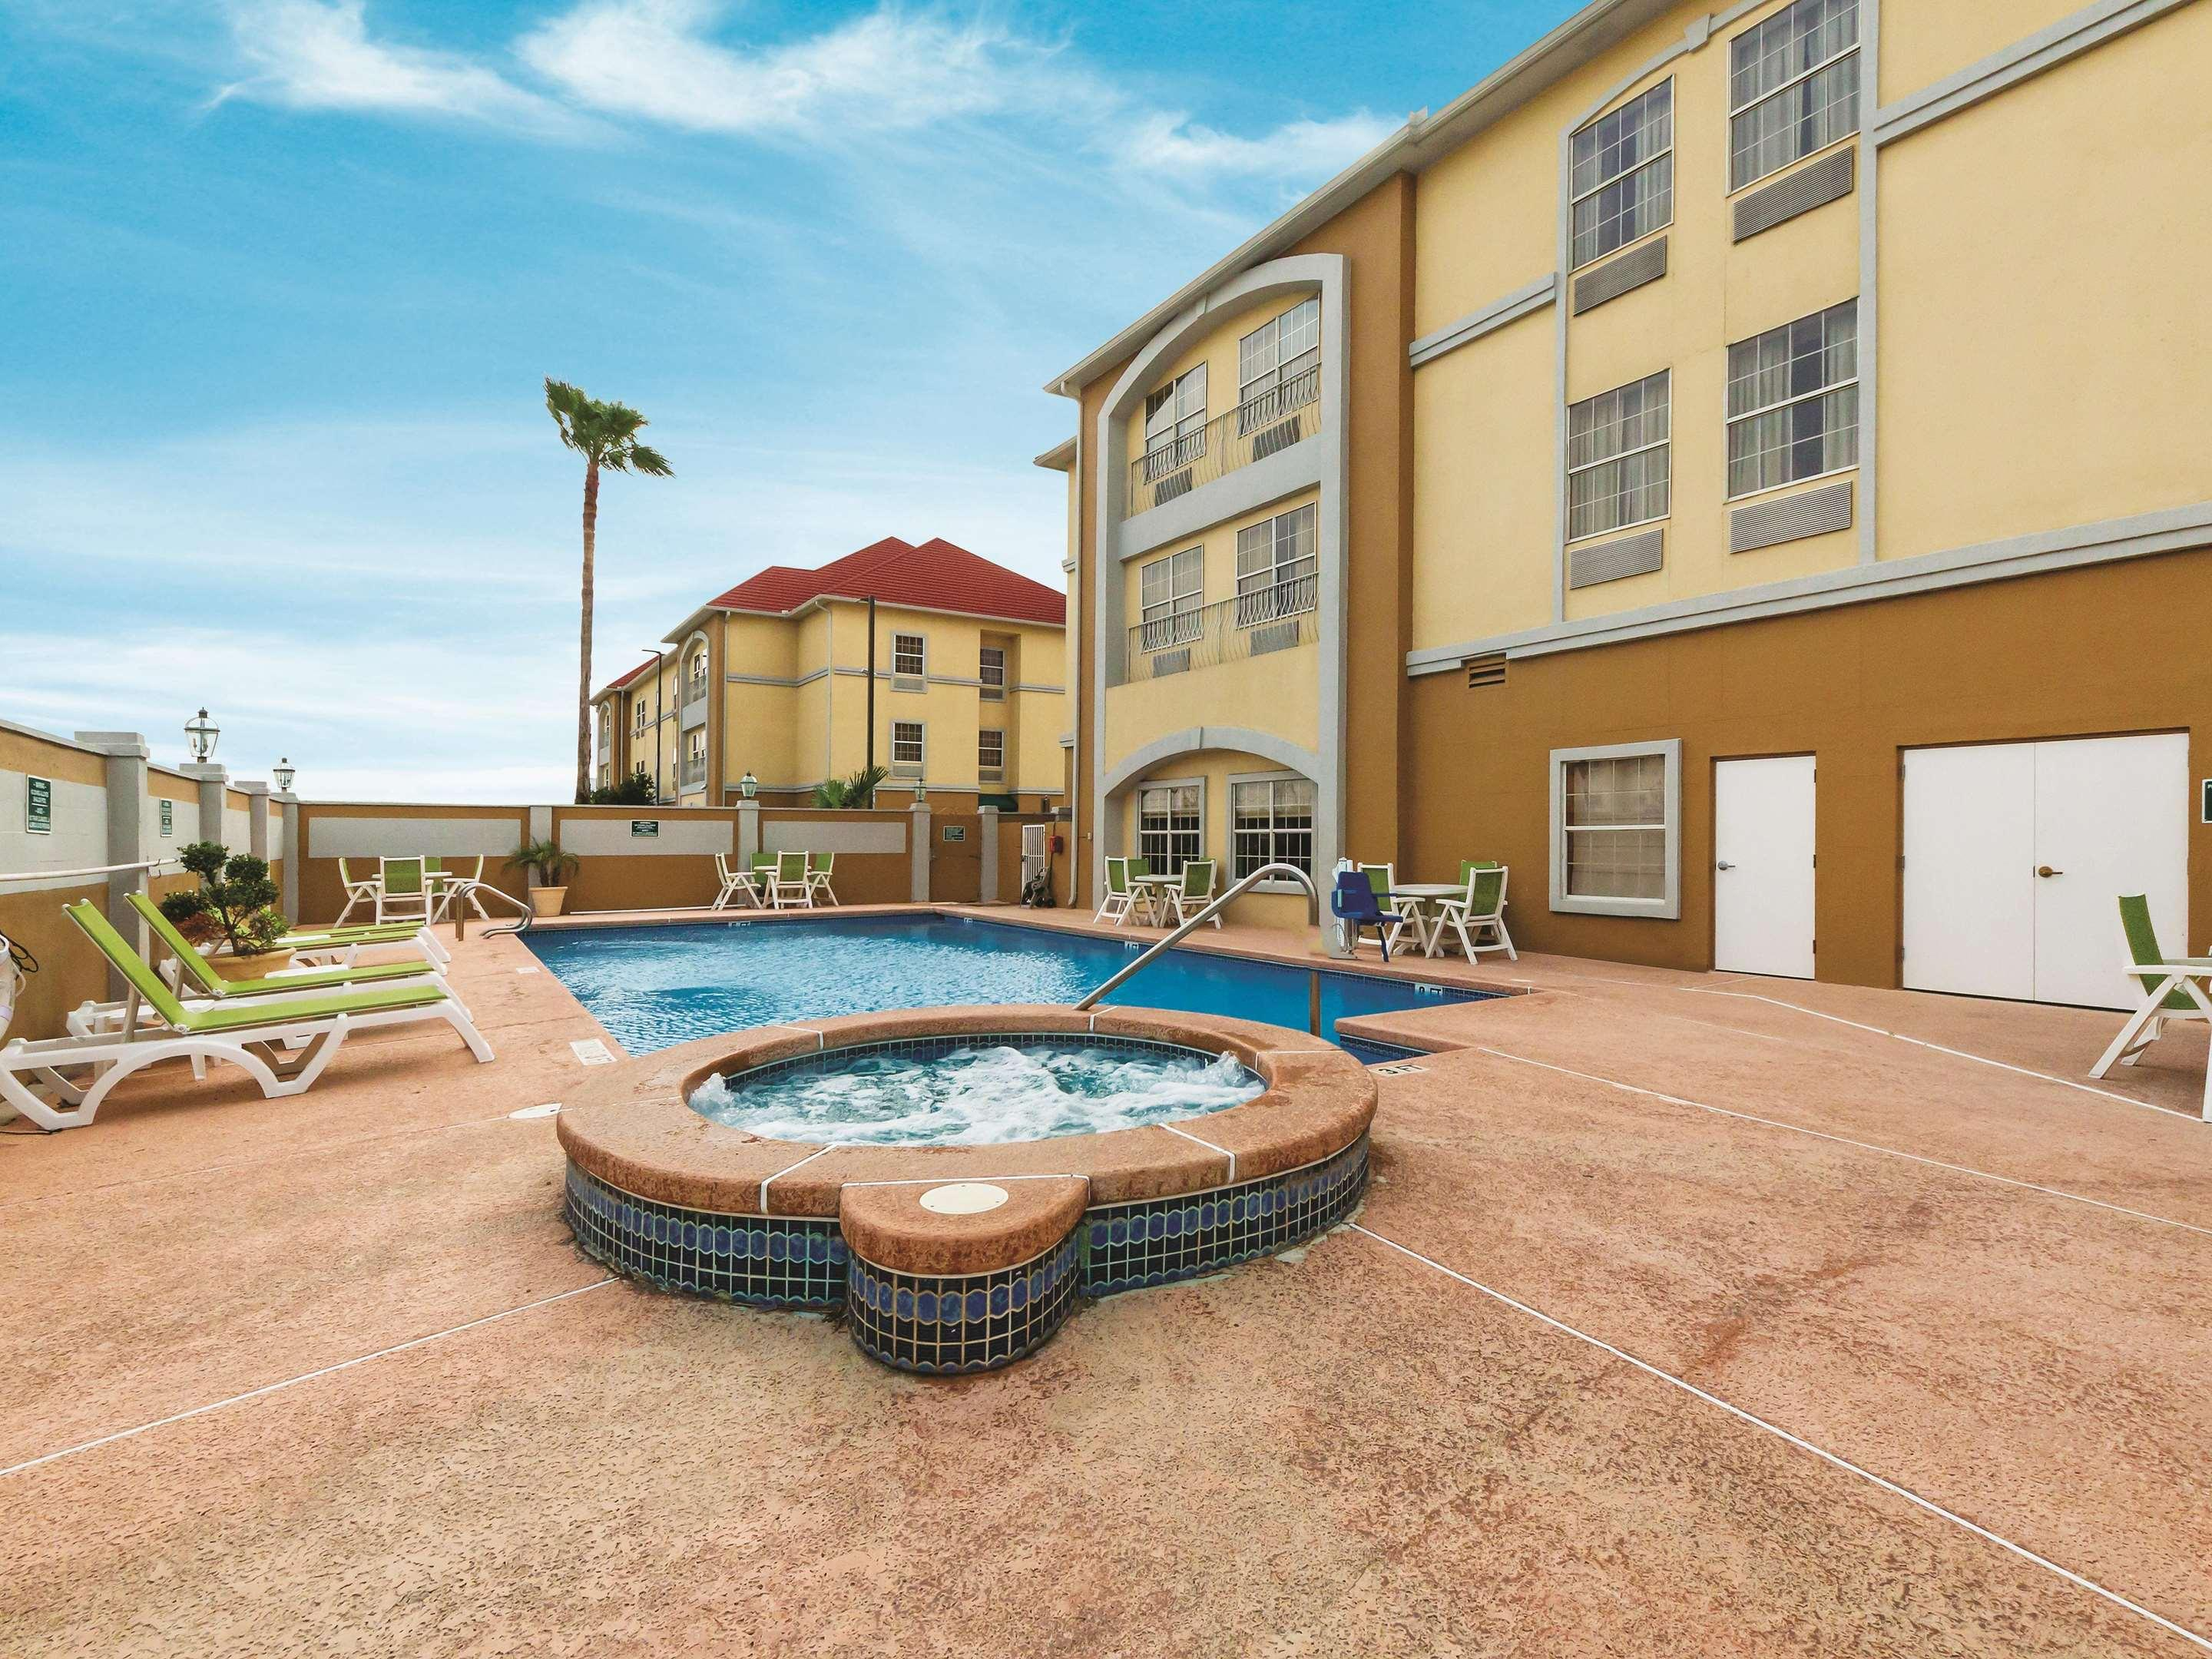 La Quinta Inn & Suites by Wyndham Pharr - Rio Grande Valley